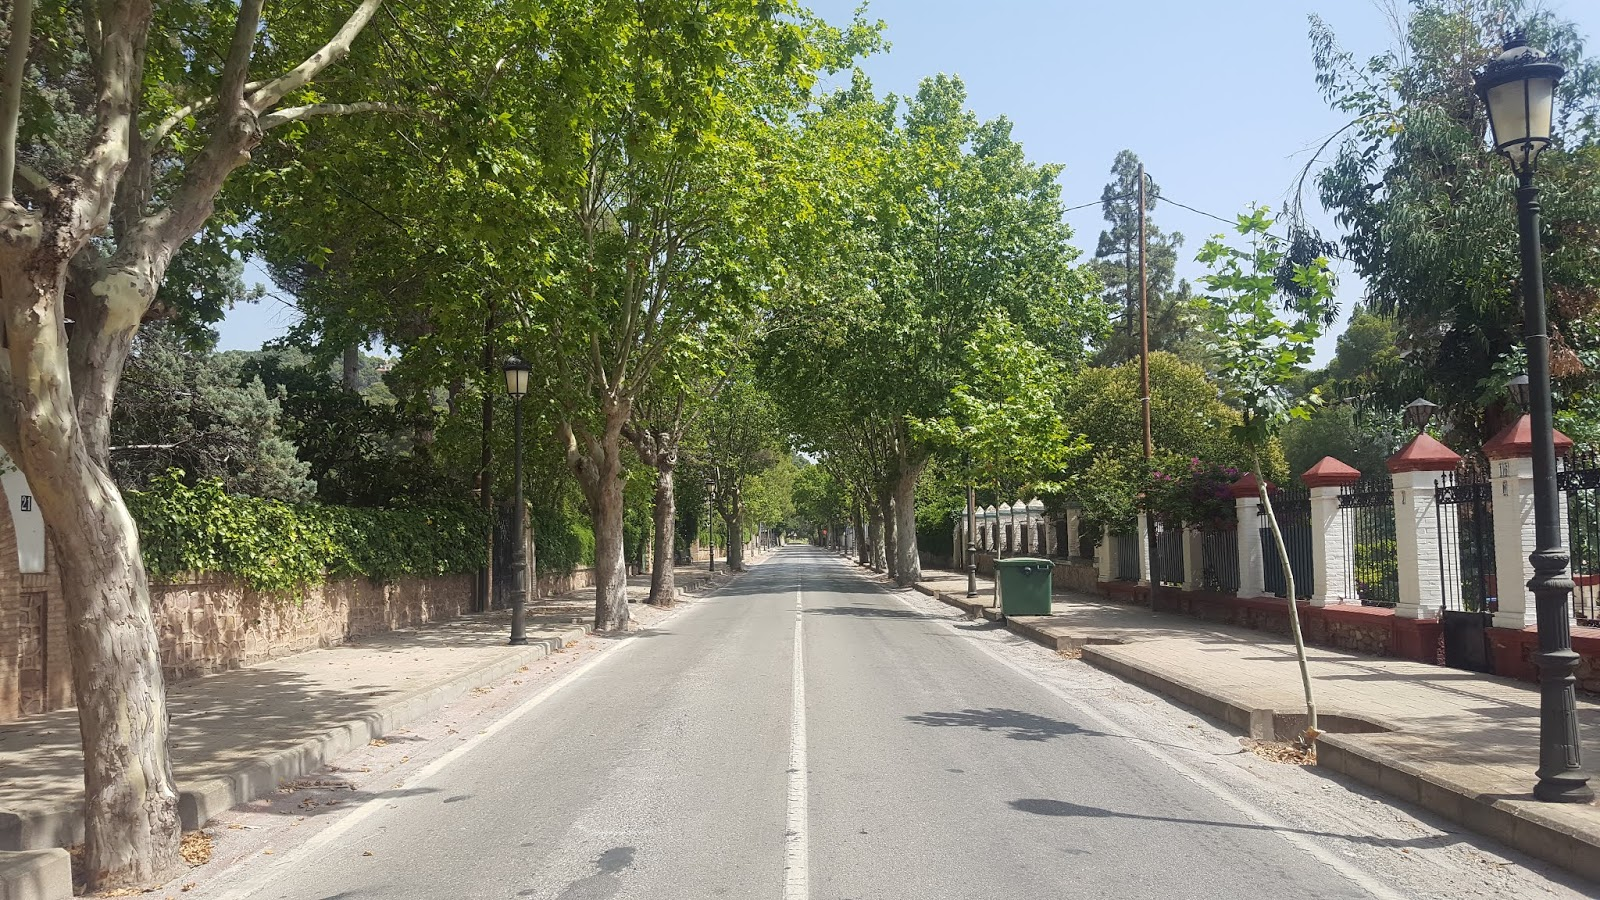 Tree-line avenues leading out of the village of Nàquera, Valencia, Spain